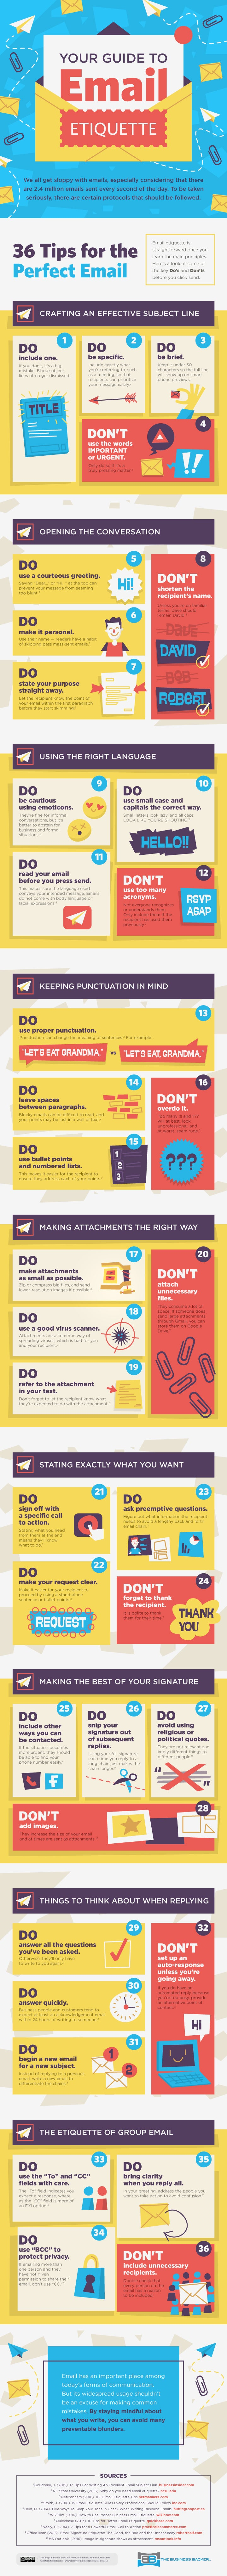 A Quick Guide to Email Etiquette (Infographic)